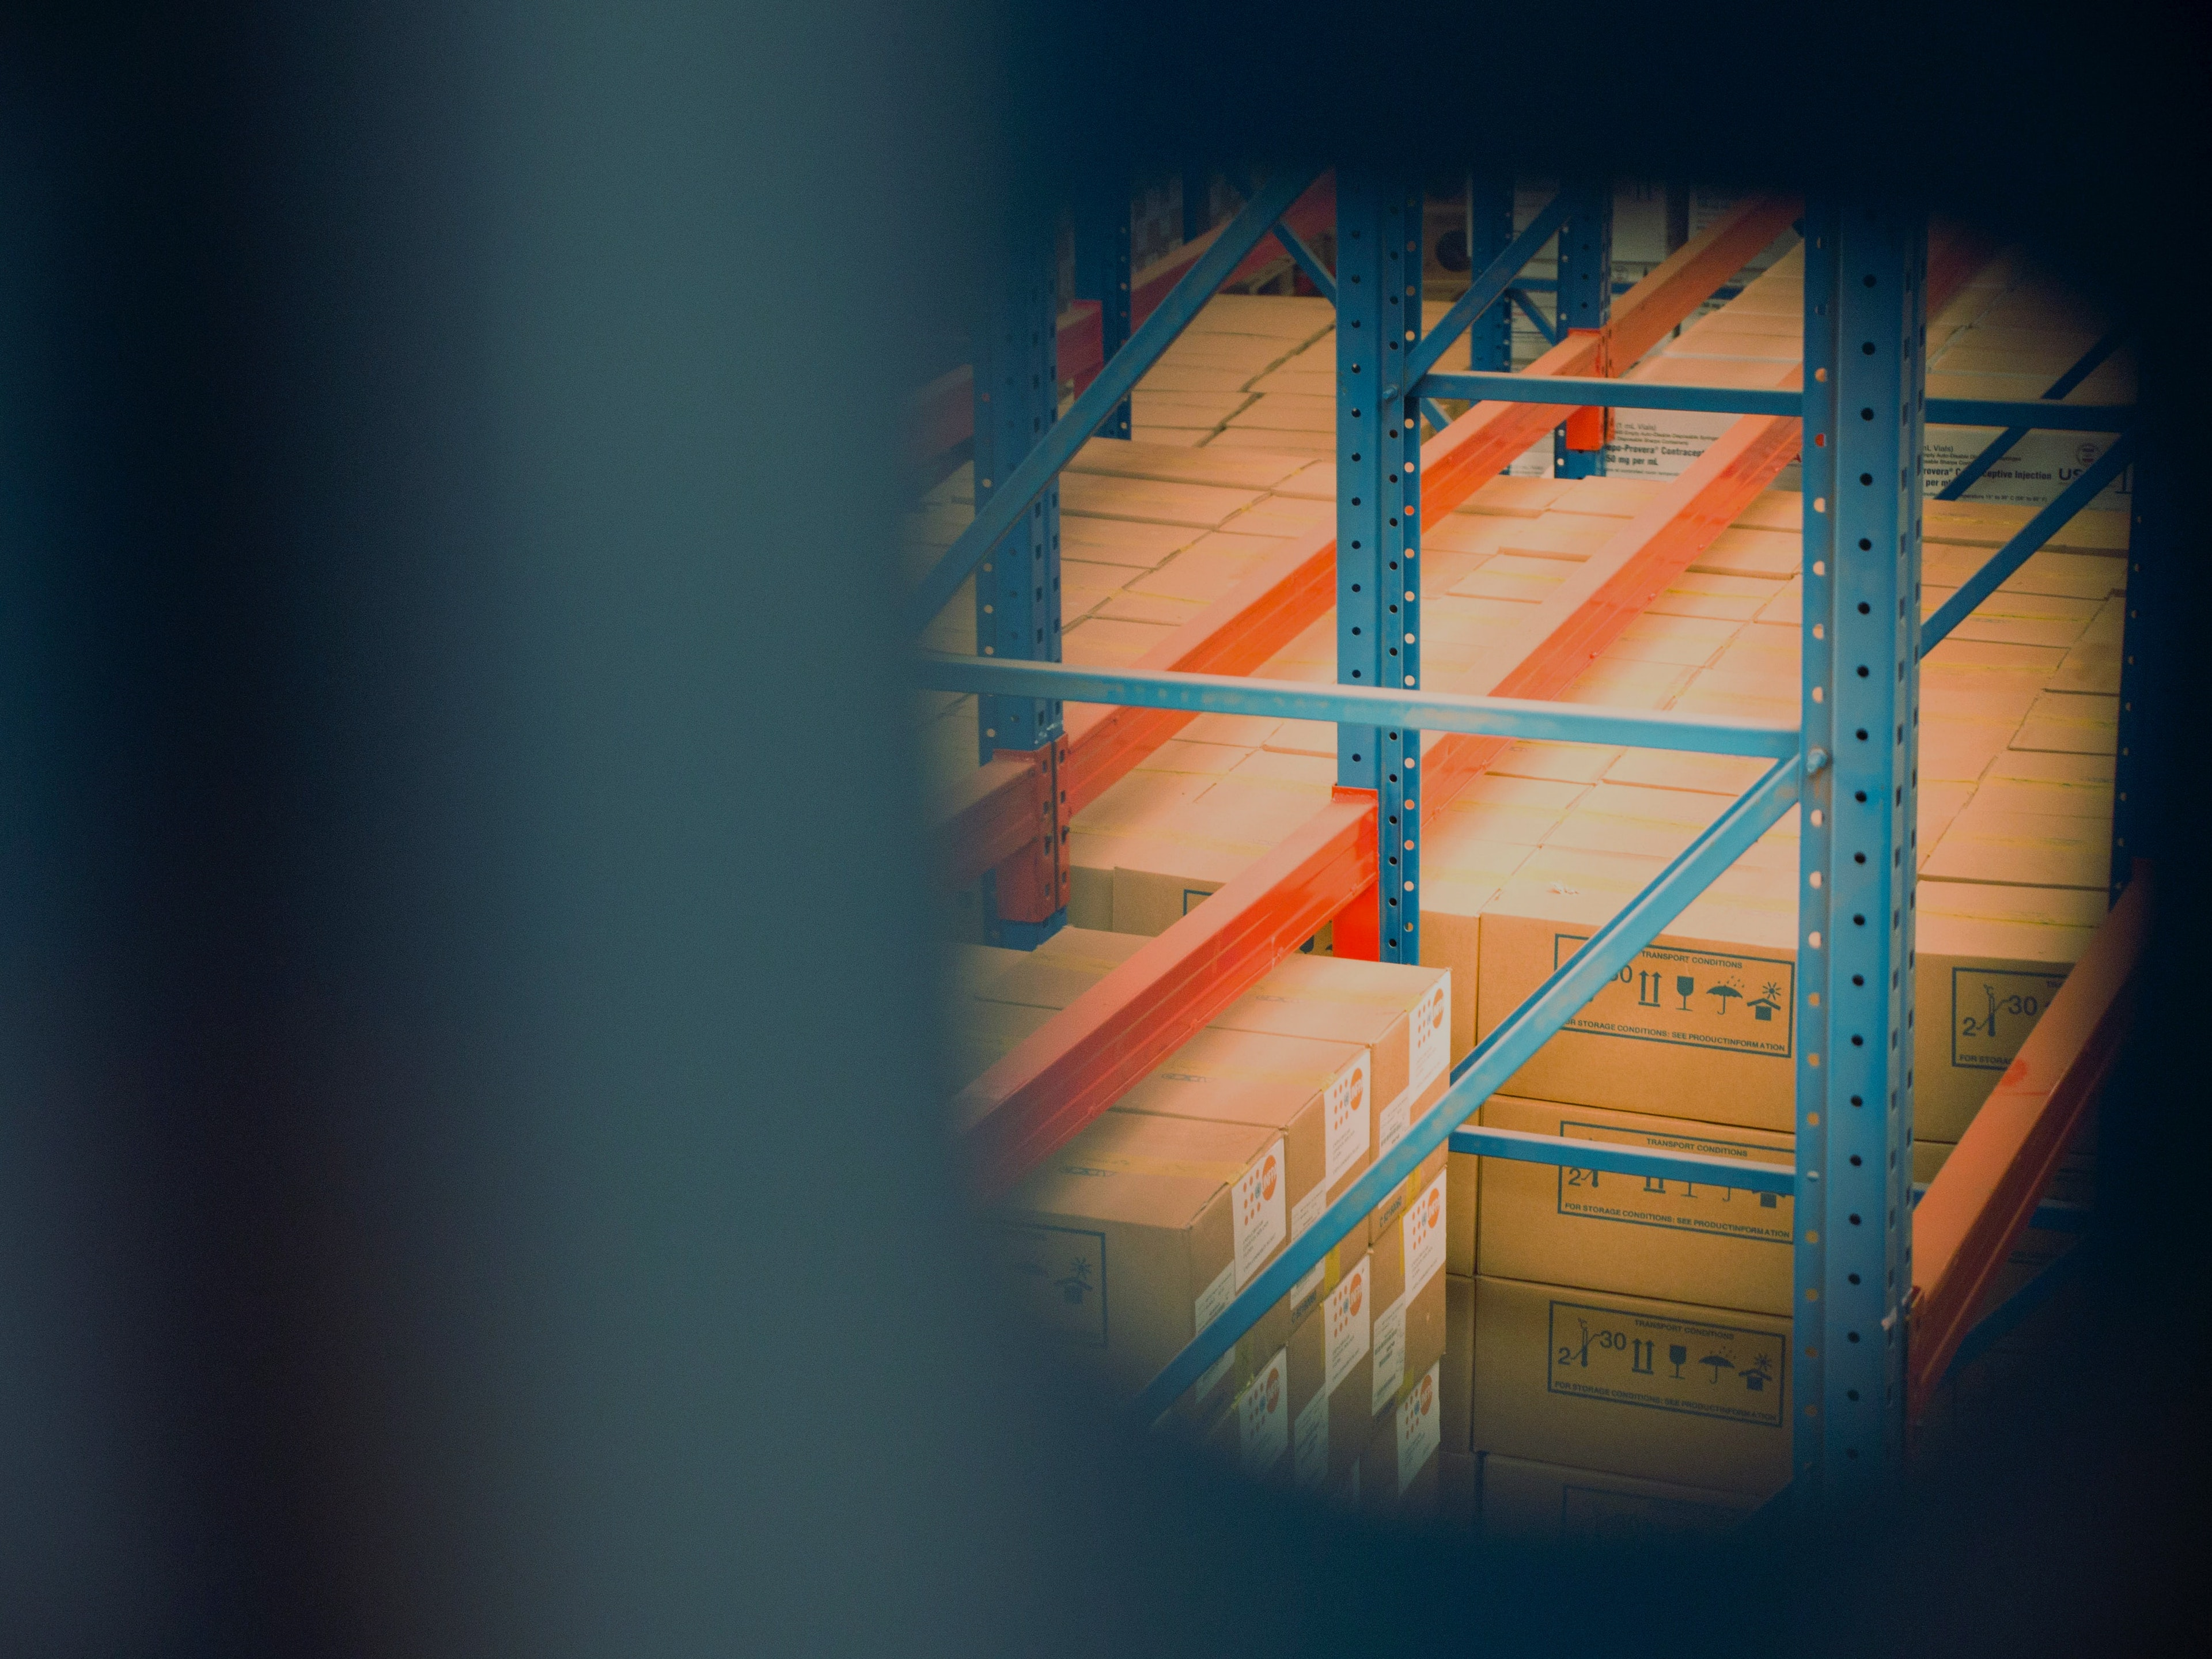 narrow key hole view of supply boxes in a warehouse